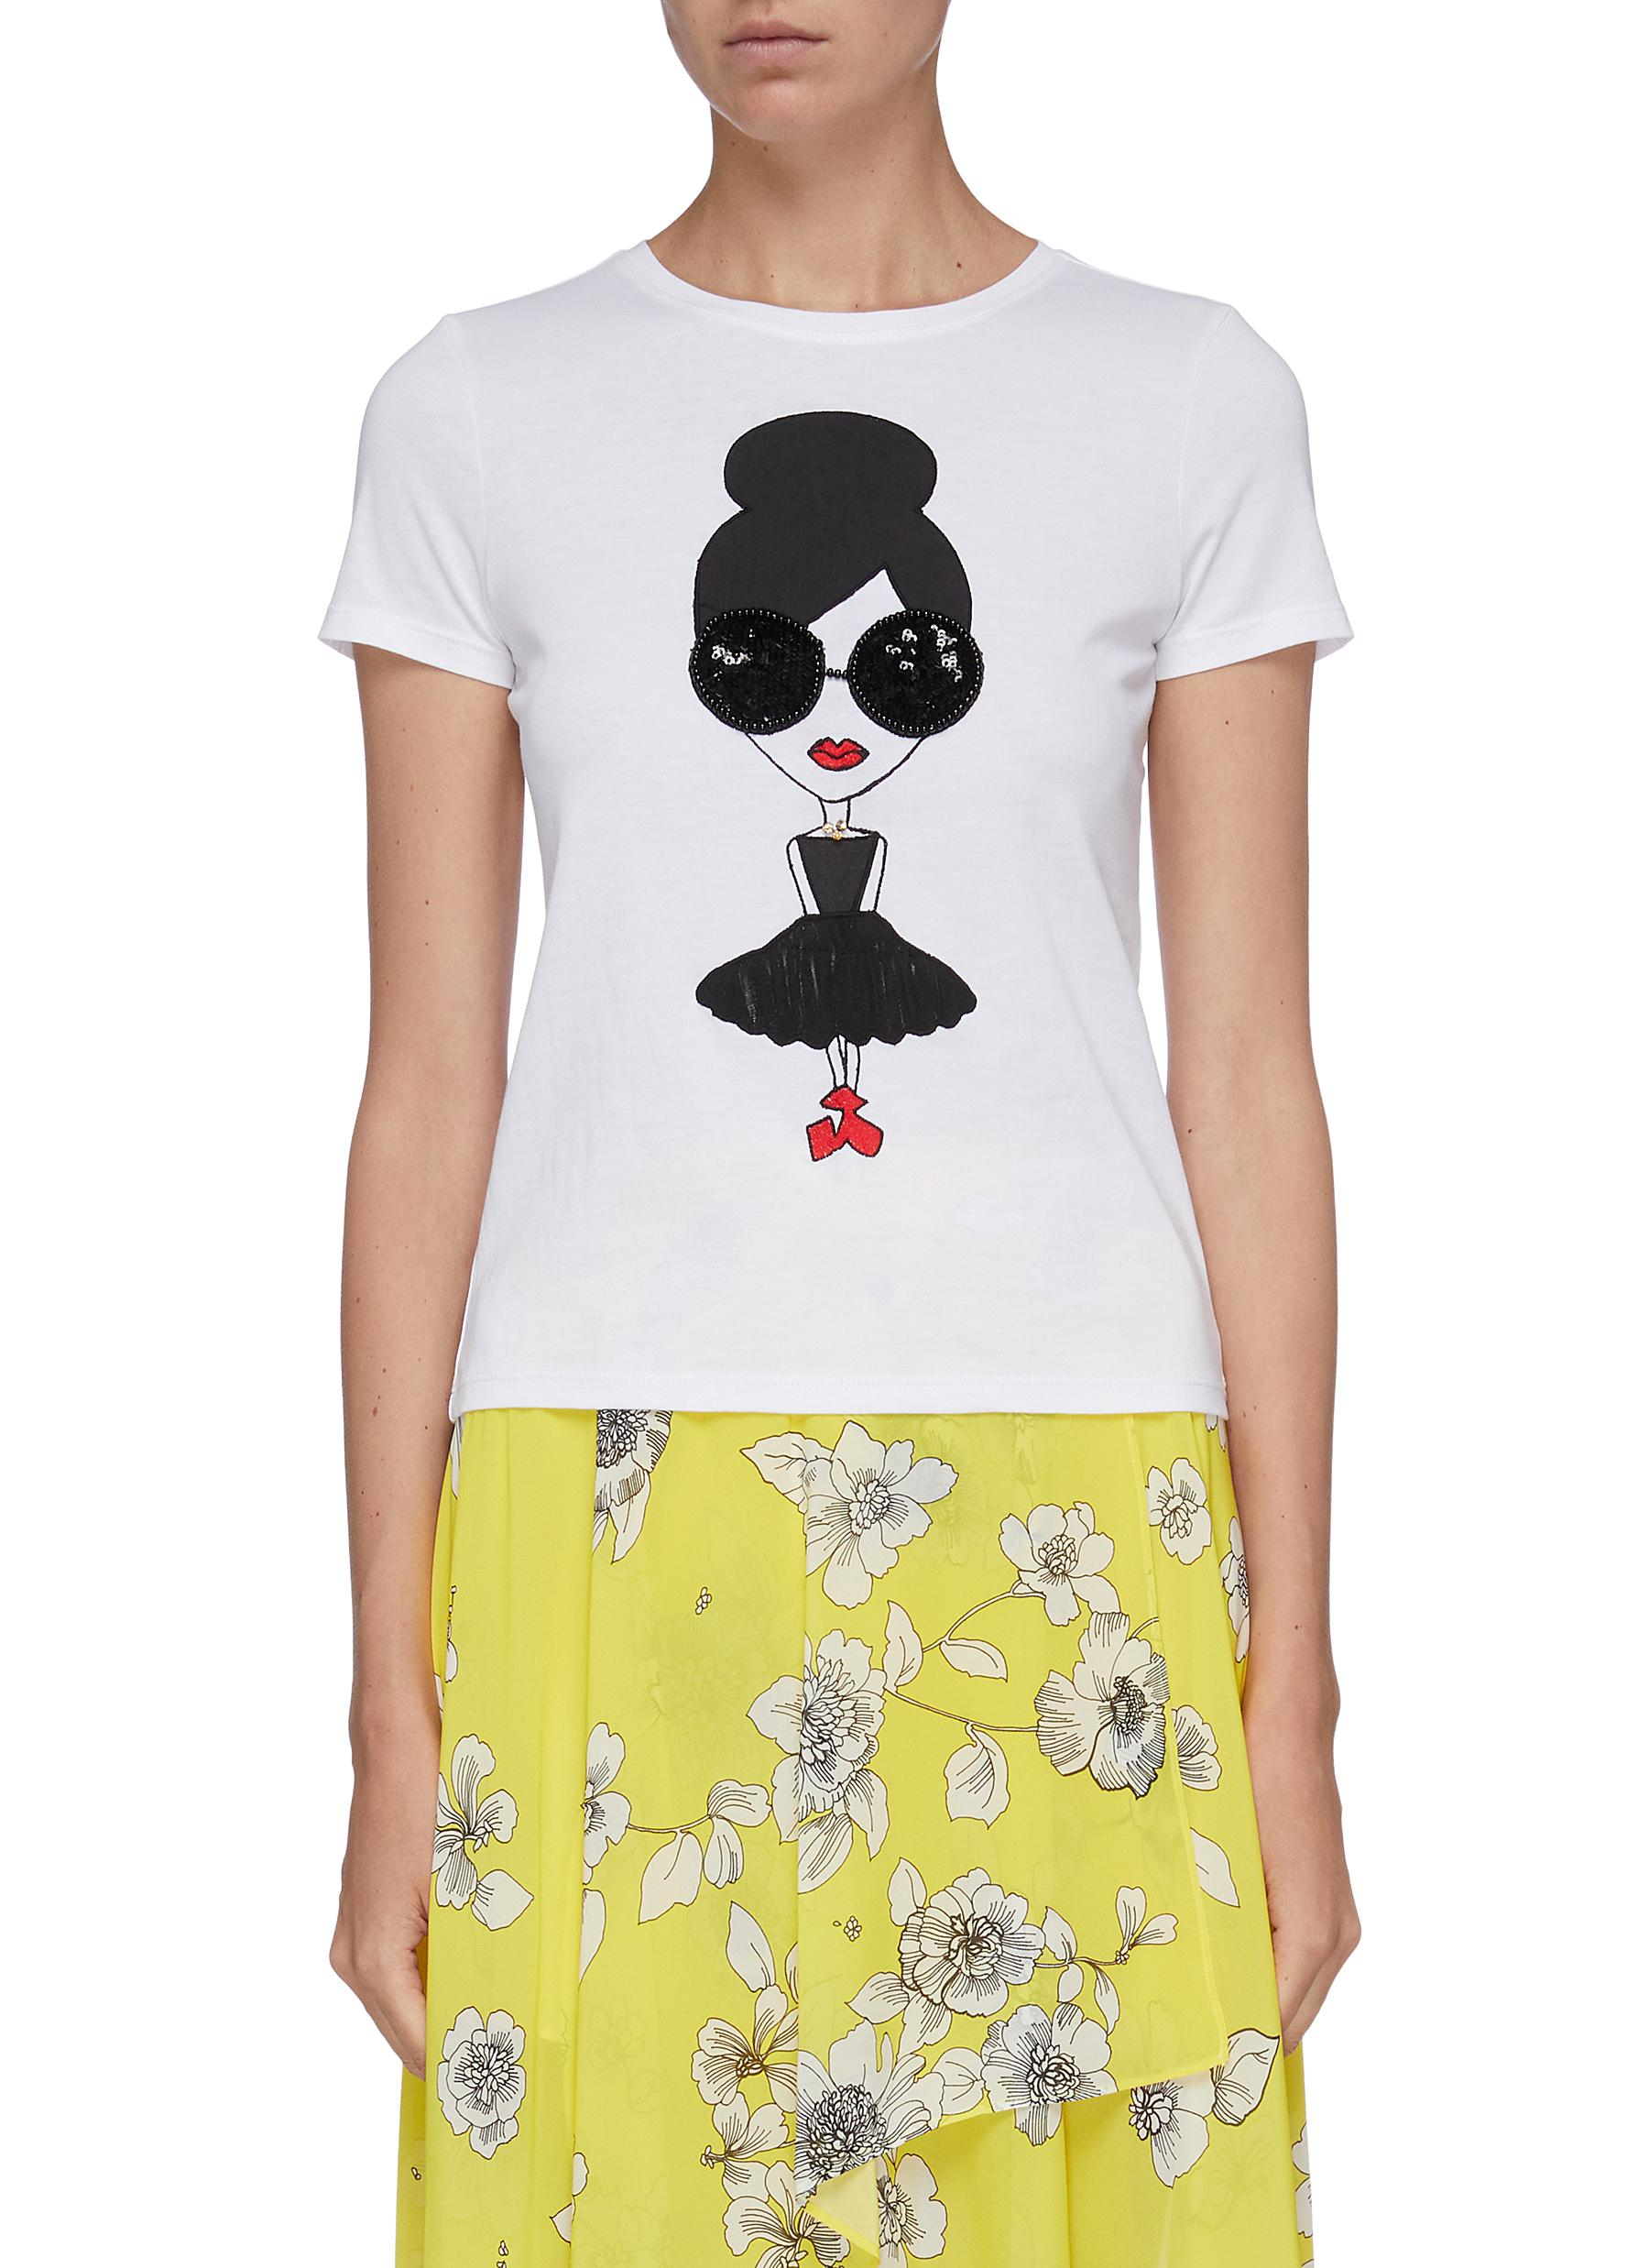 Rylyn sequin Stacey T-shirt by Alice + Olivia